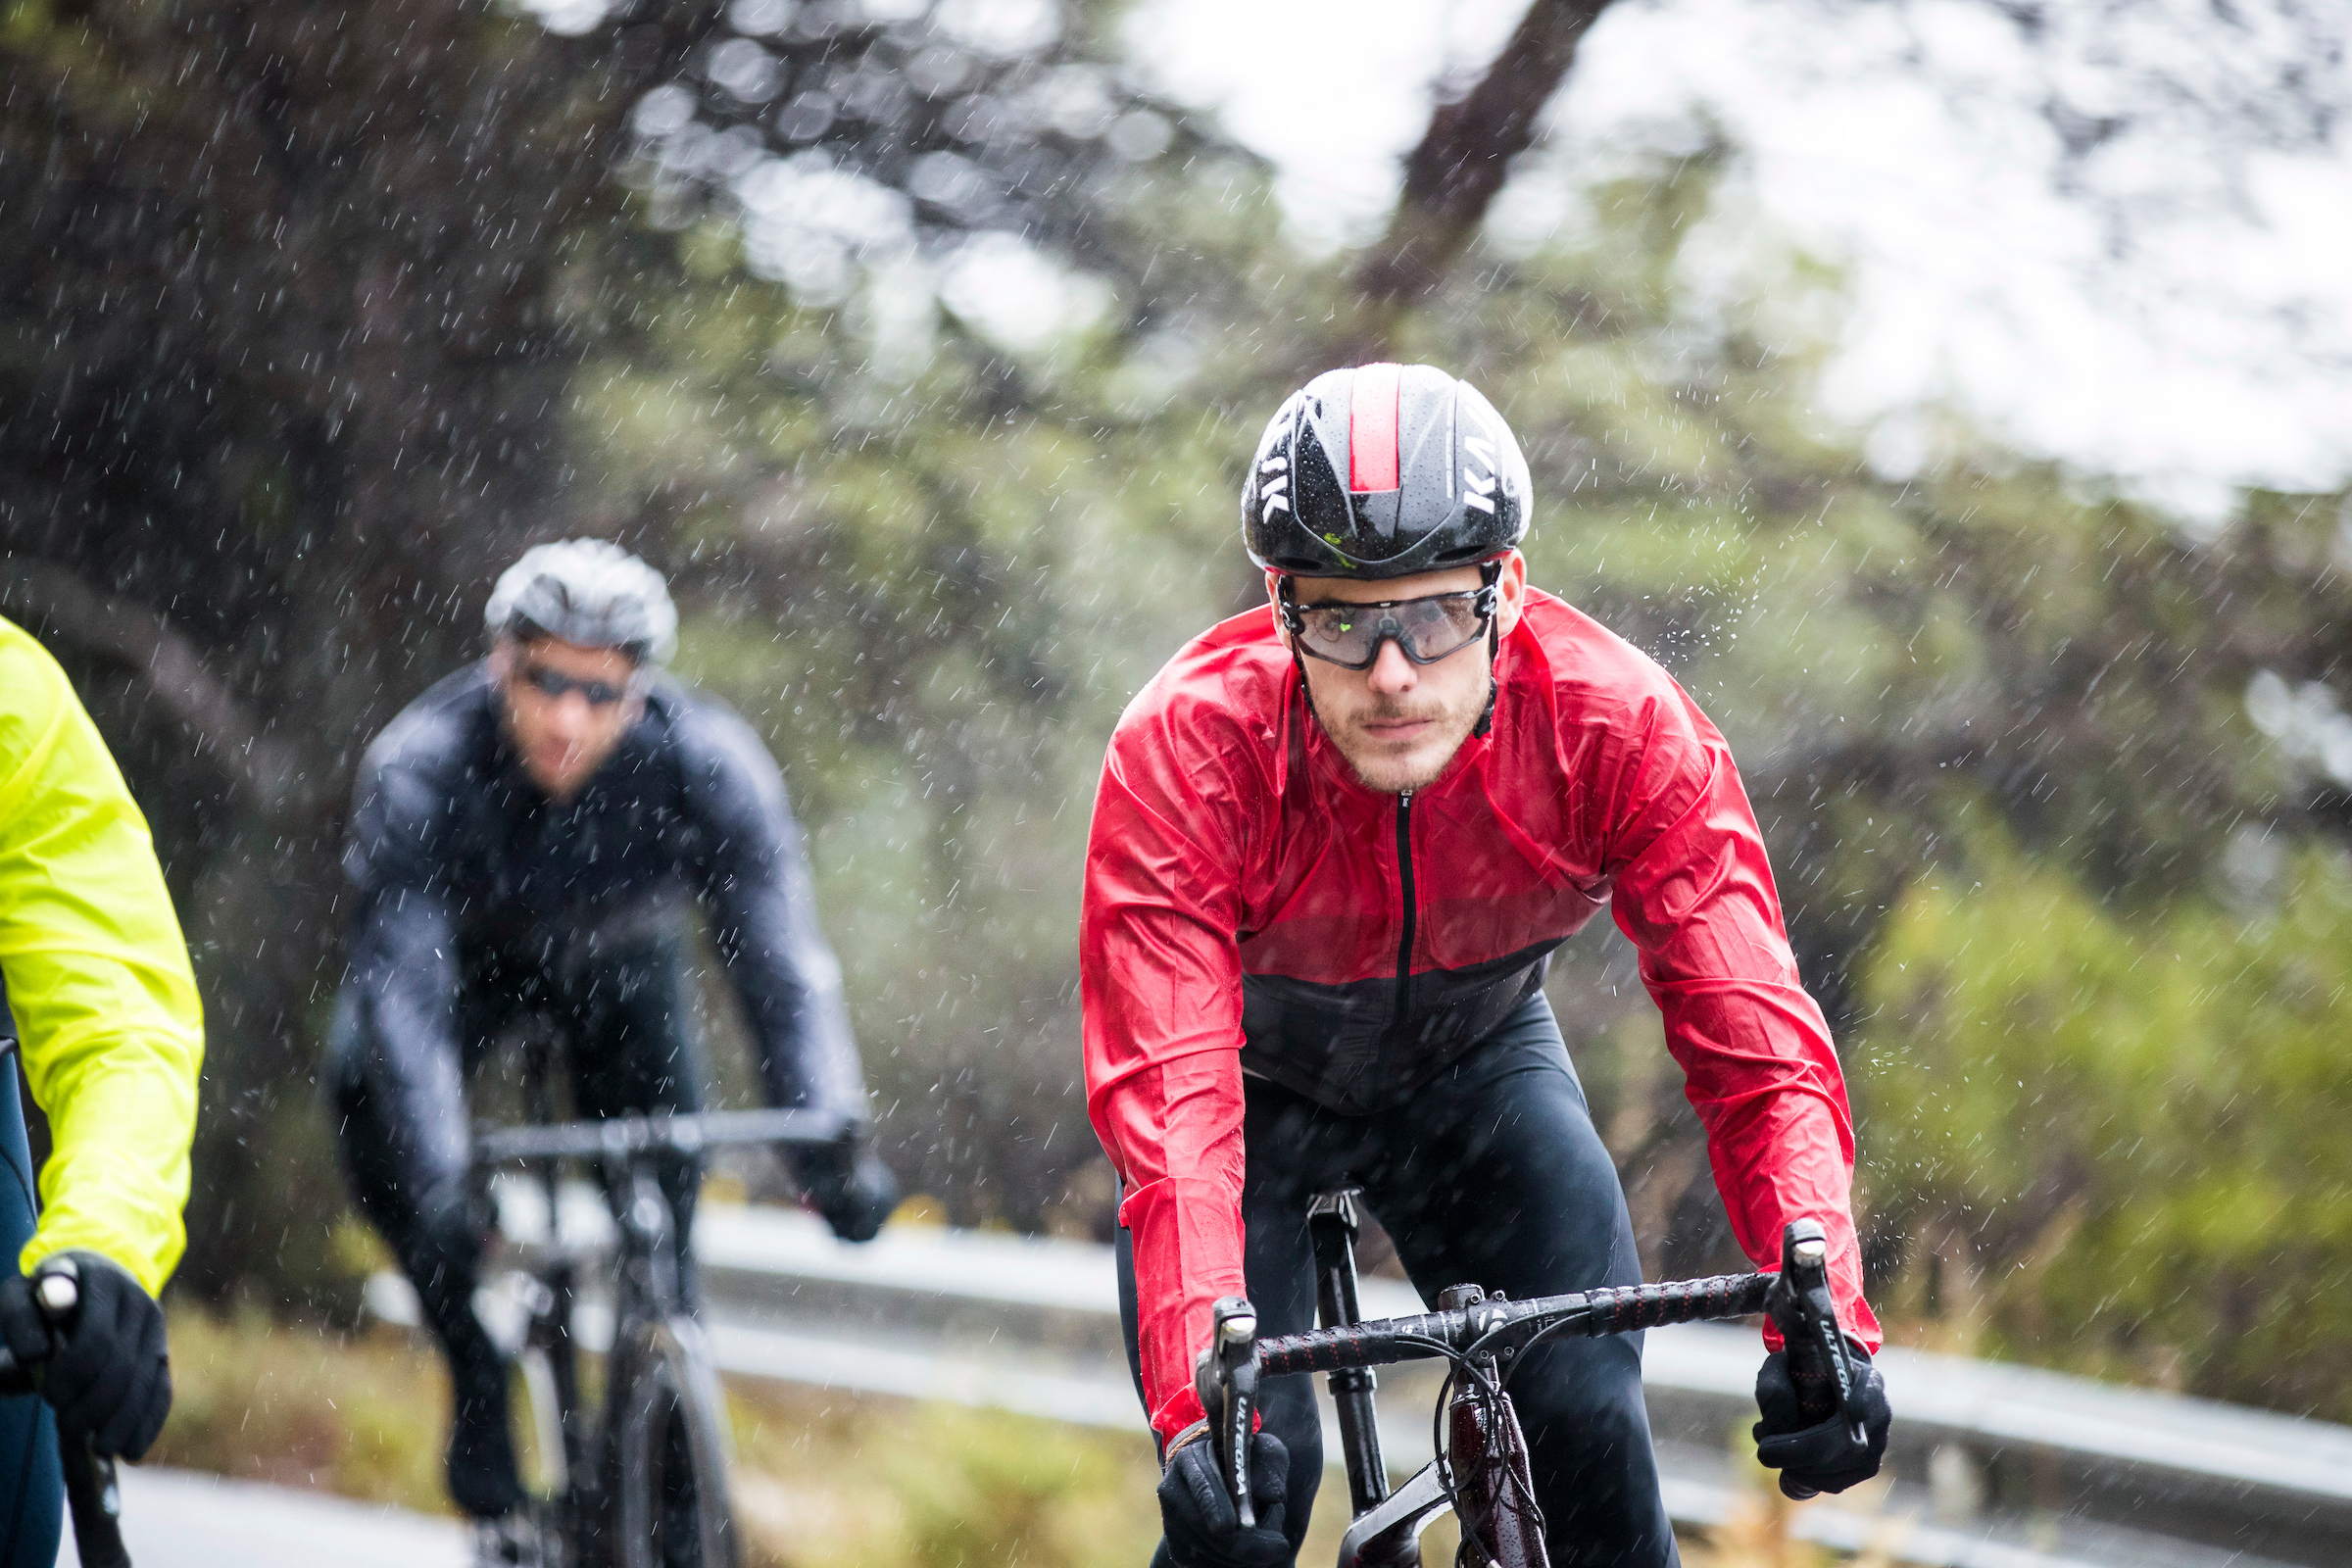 Cycling in the rain in the Santini cycling windbreaker rain jacket